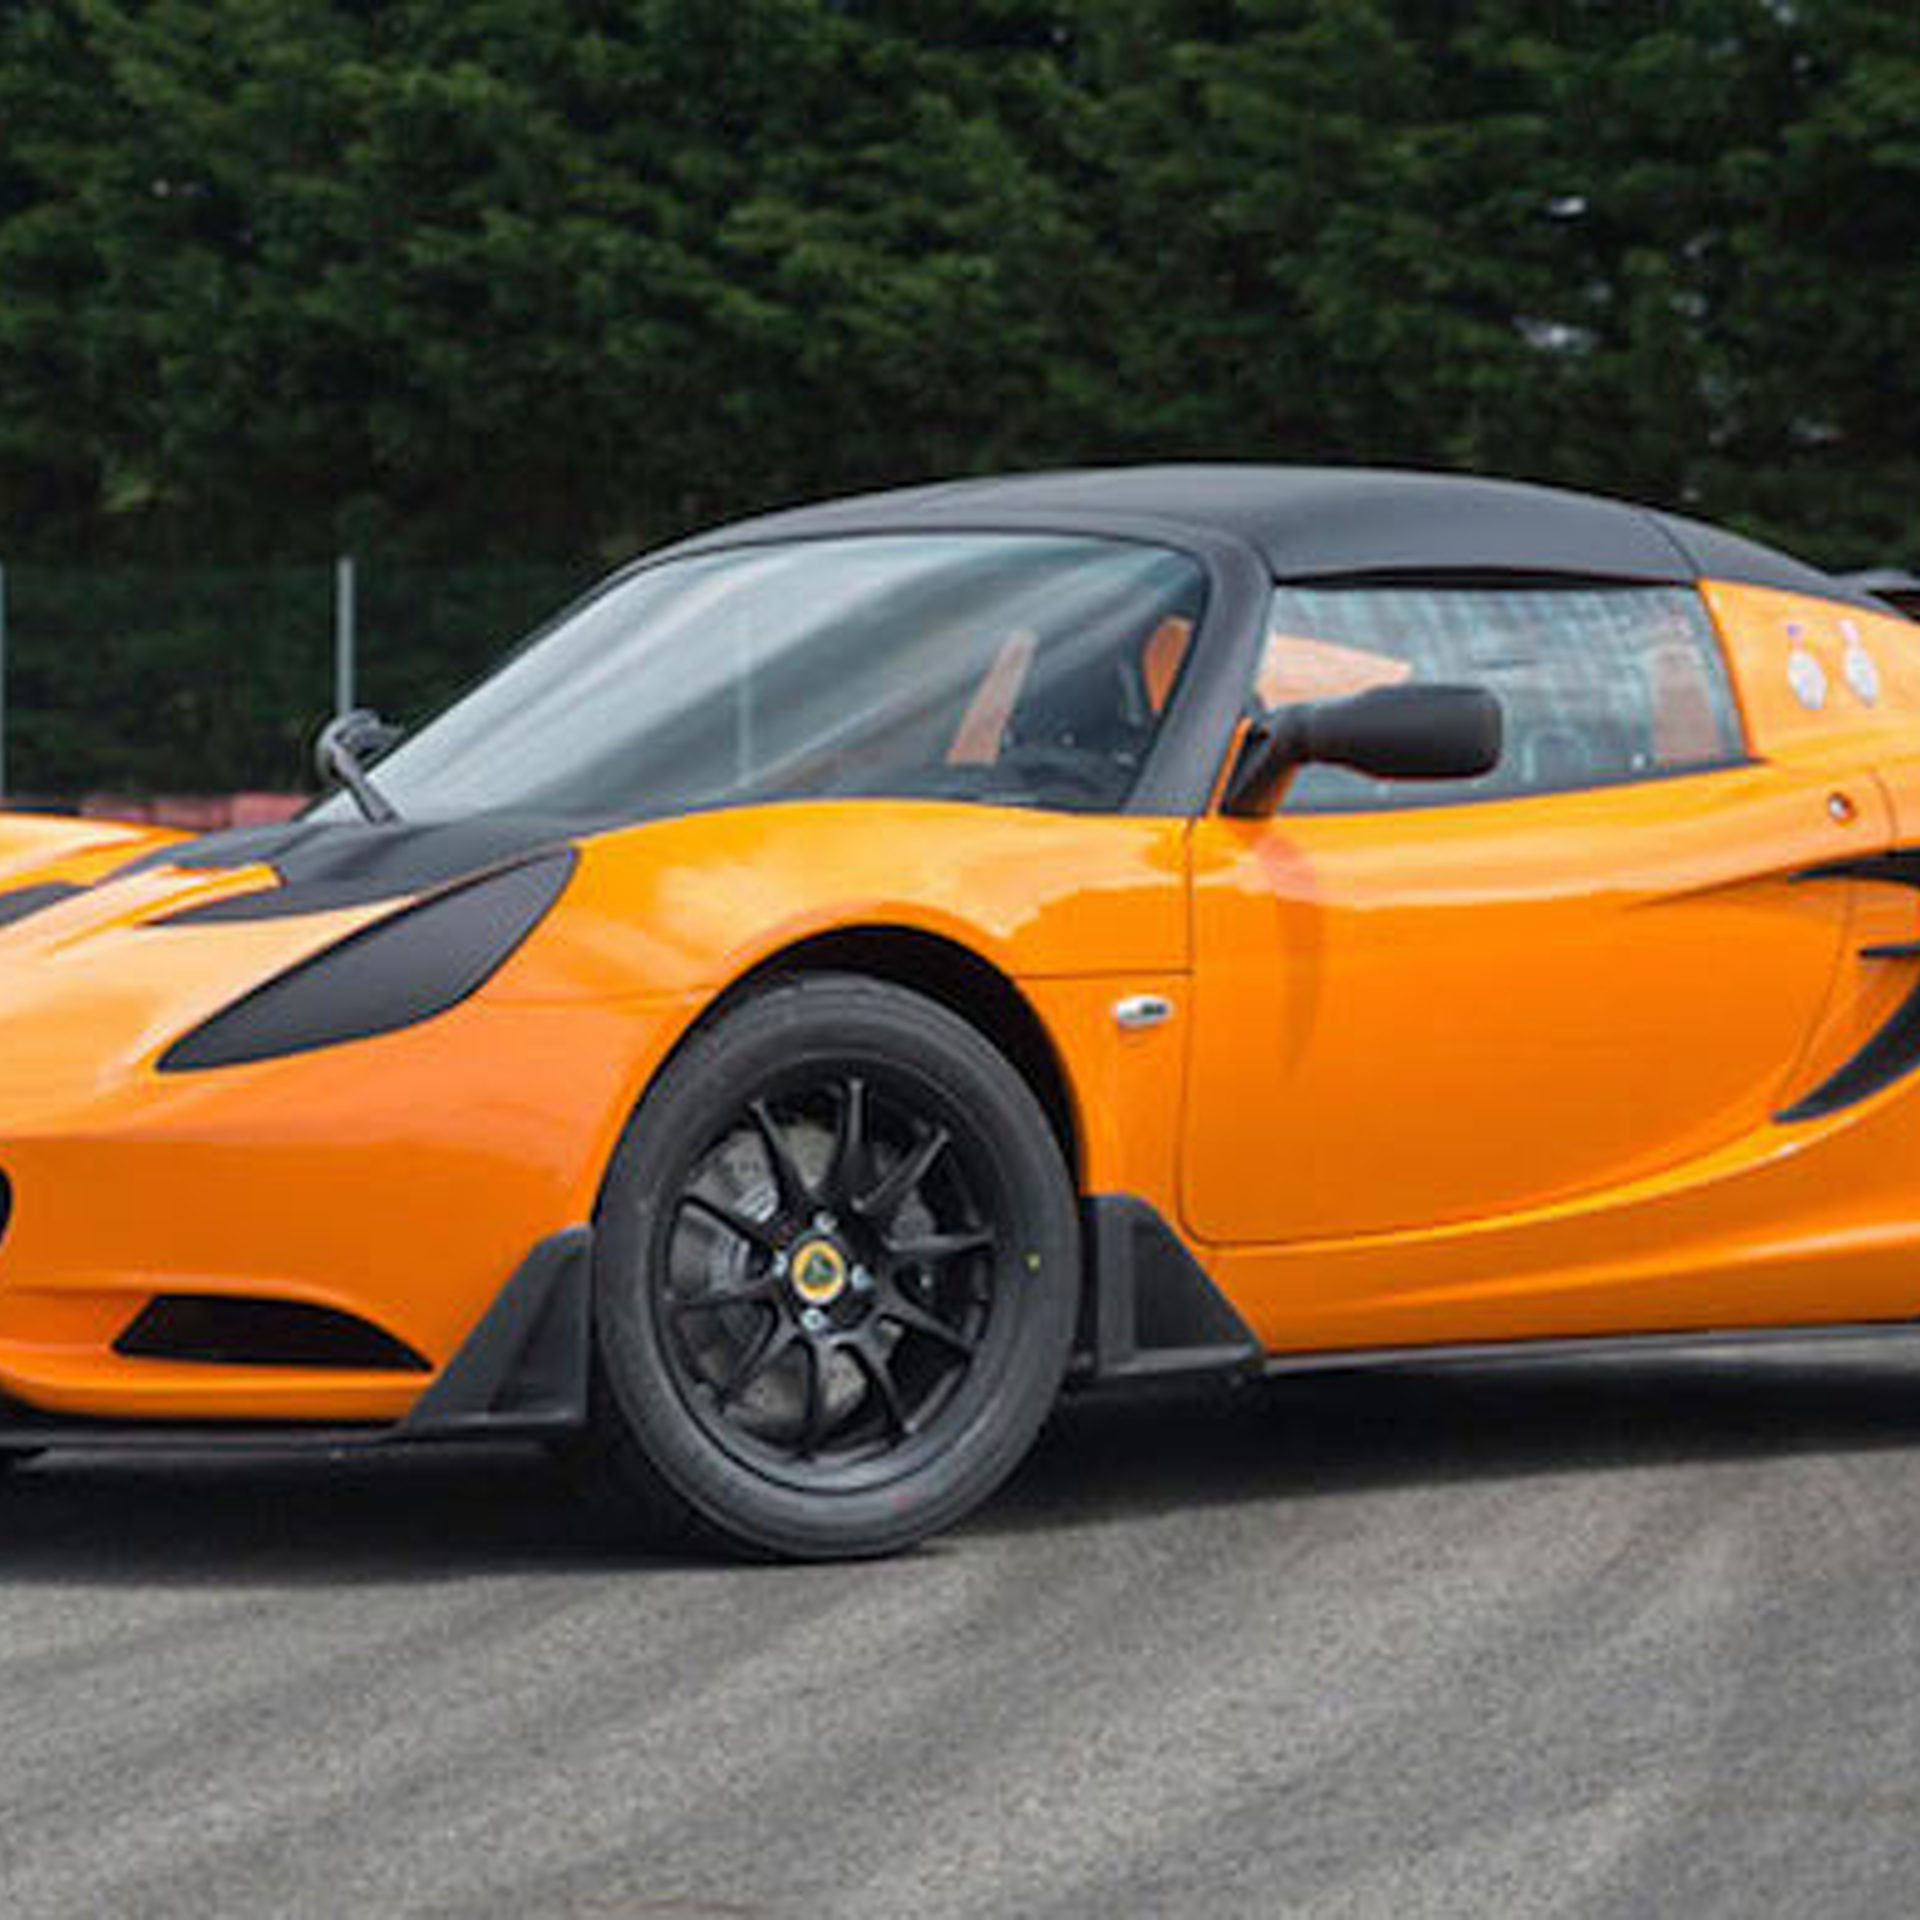 Lotus Elise Race 250 is Ready for Track Duty Only